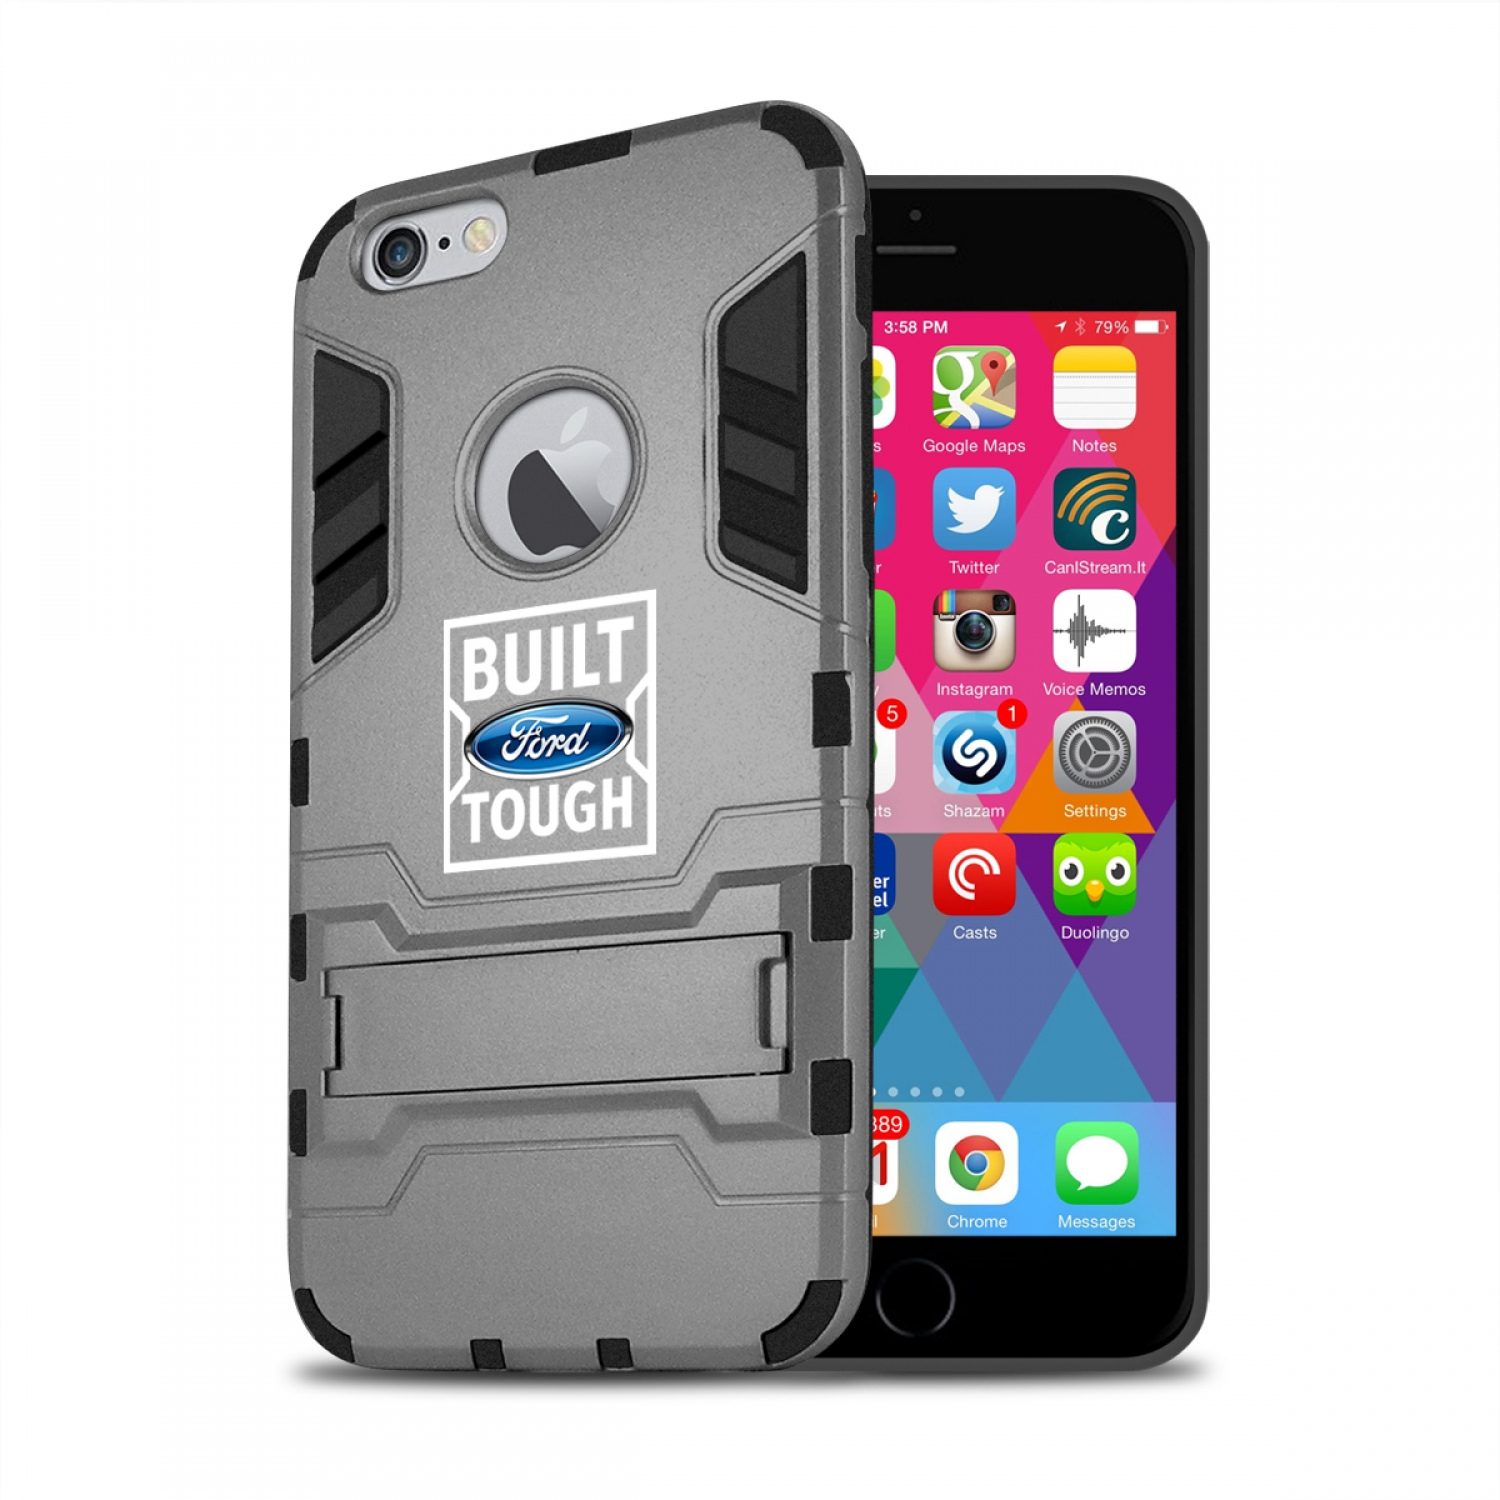 Ford Built Ford Tough iPhone 6 6s Shockproof TPU ABS Hybrid Dark Gray Phone Case